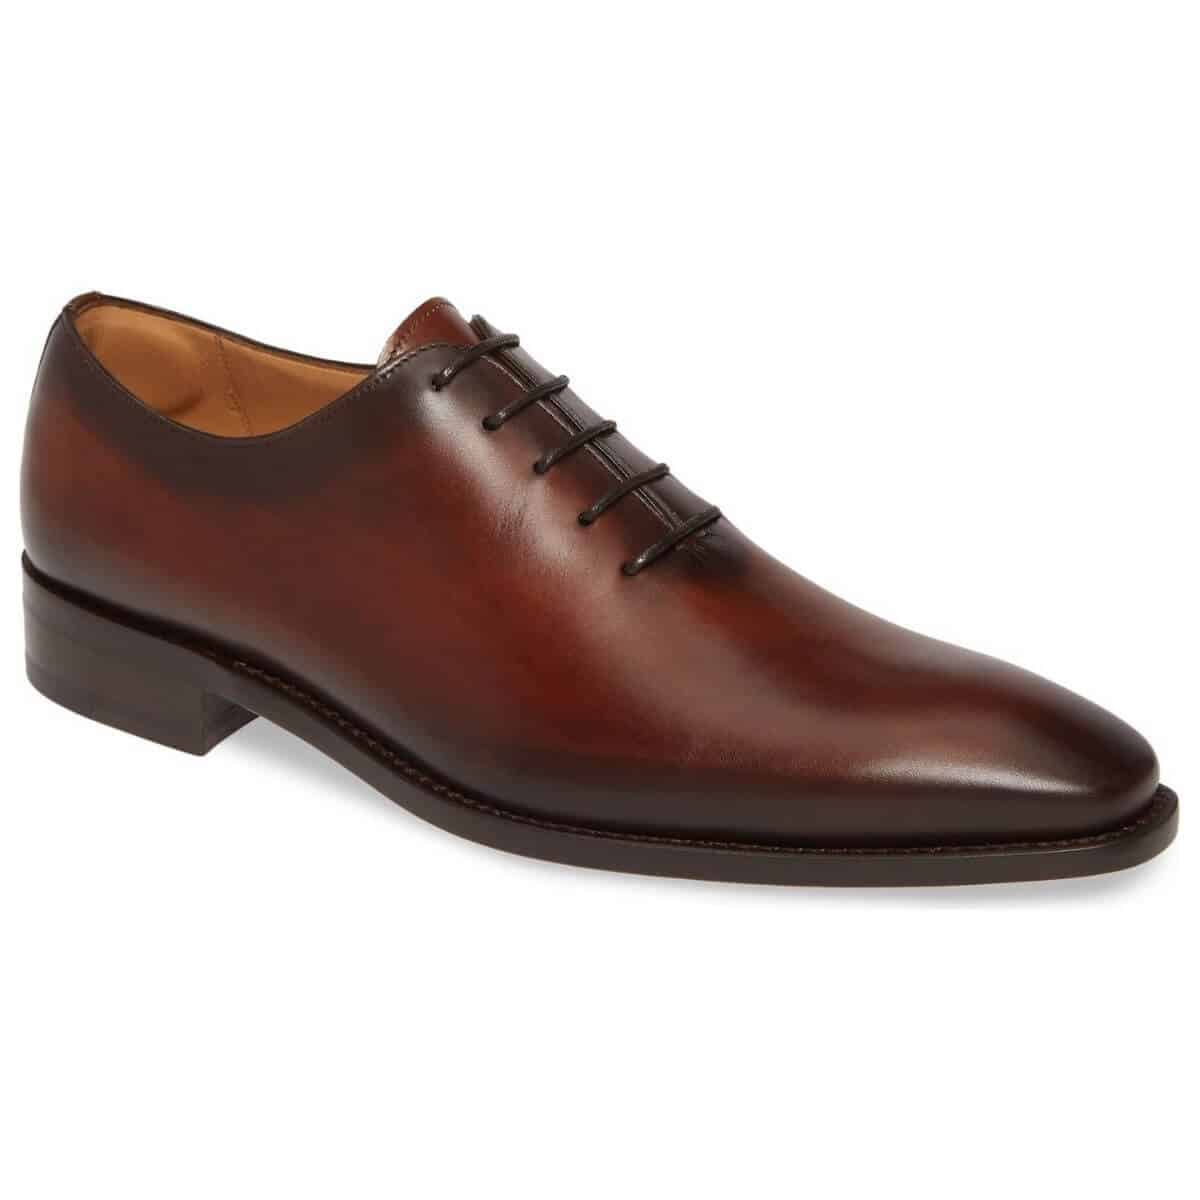 Cognac leather wholecut Oxford shoe.